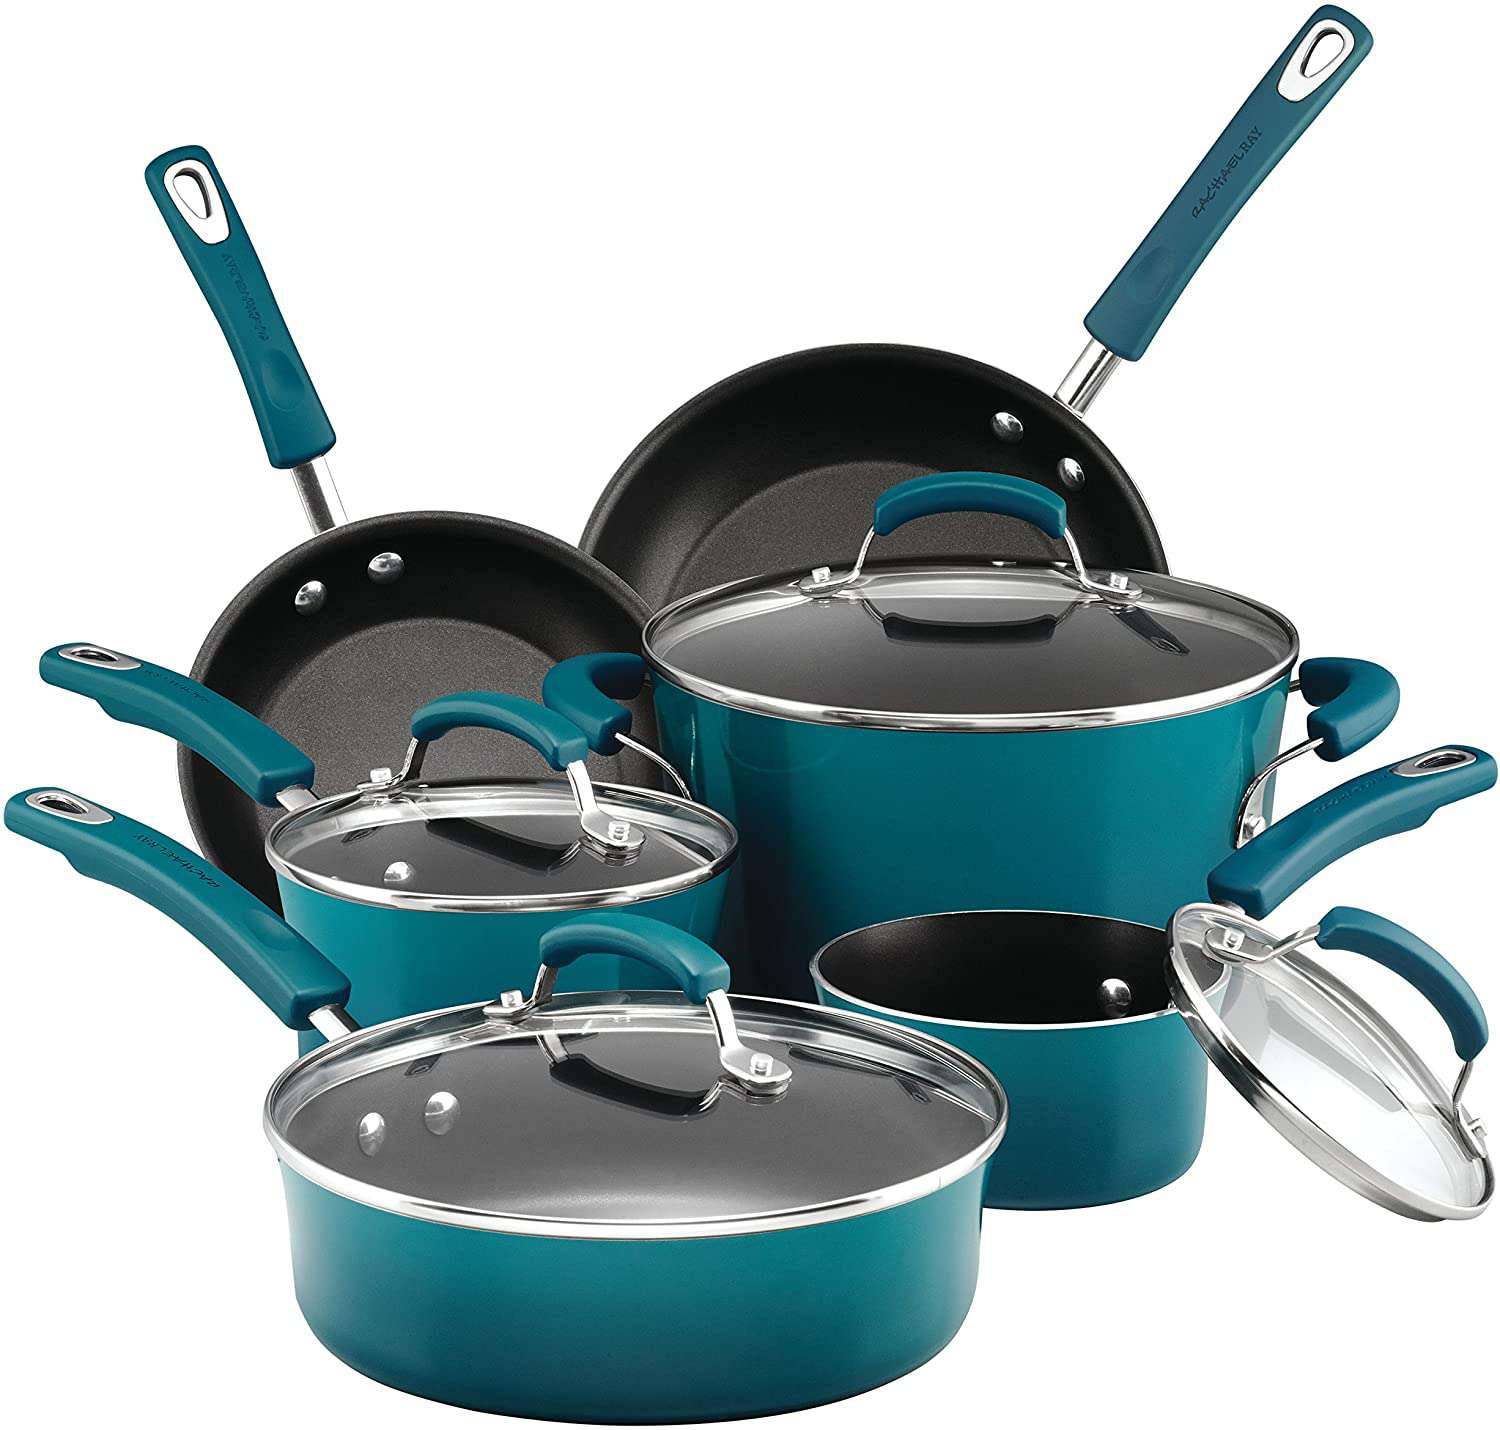 Rachael Ray 10 Piece Brights Nonstick Cookware Pots and Pans Set